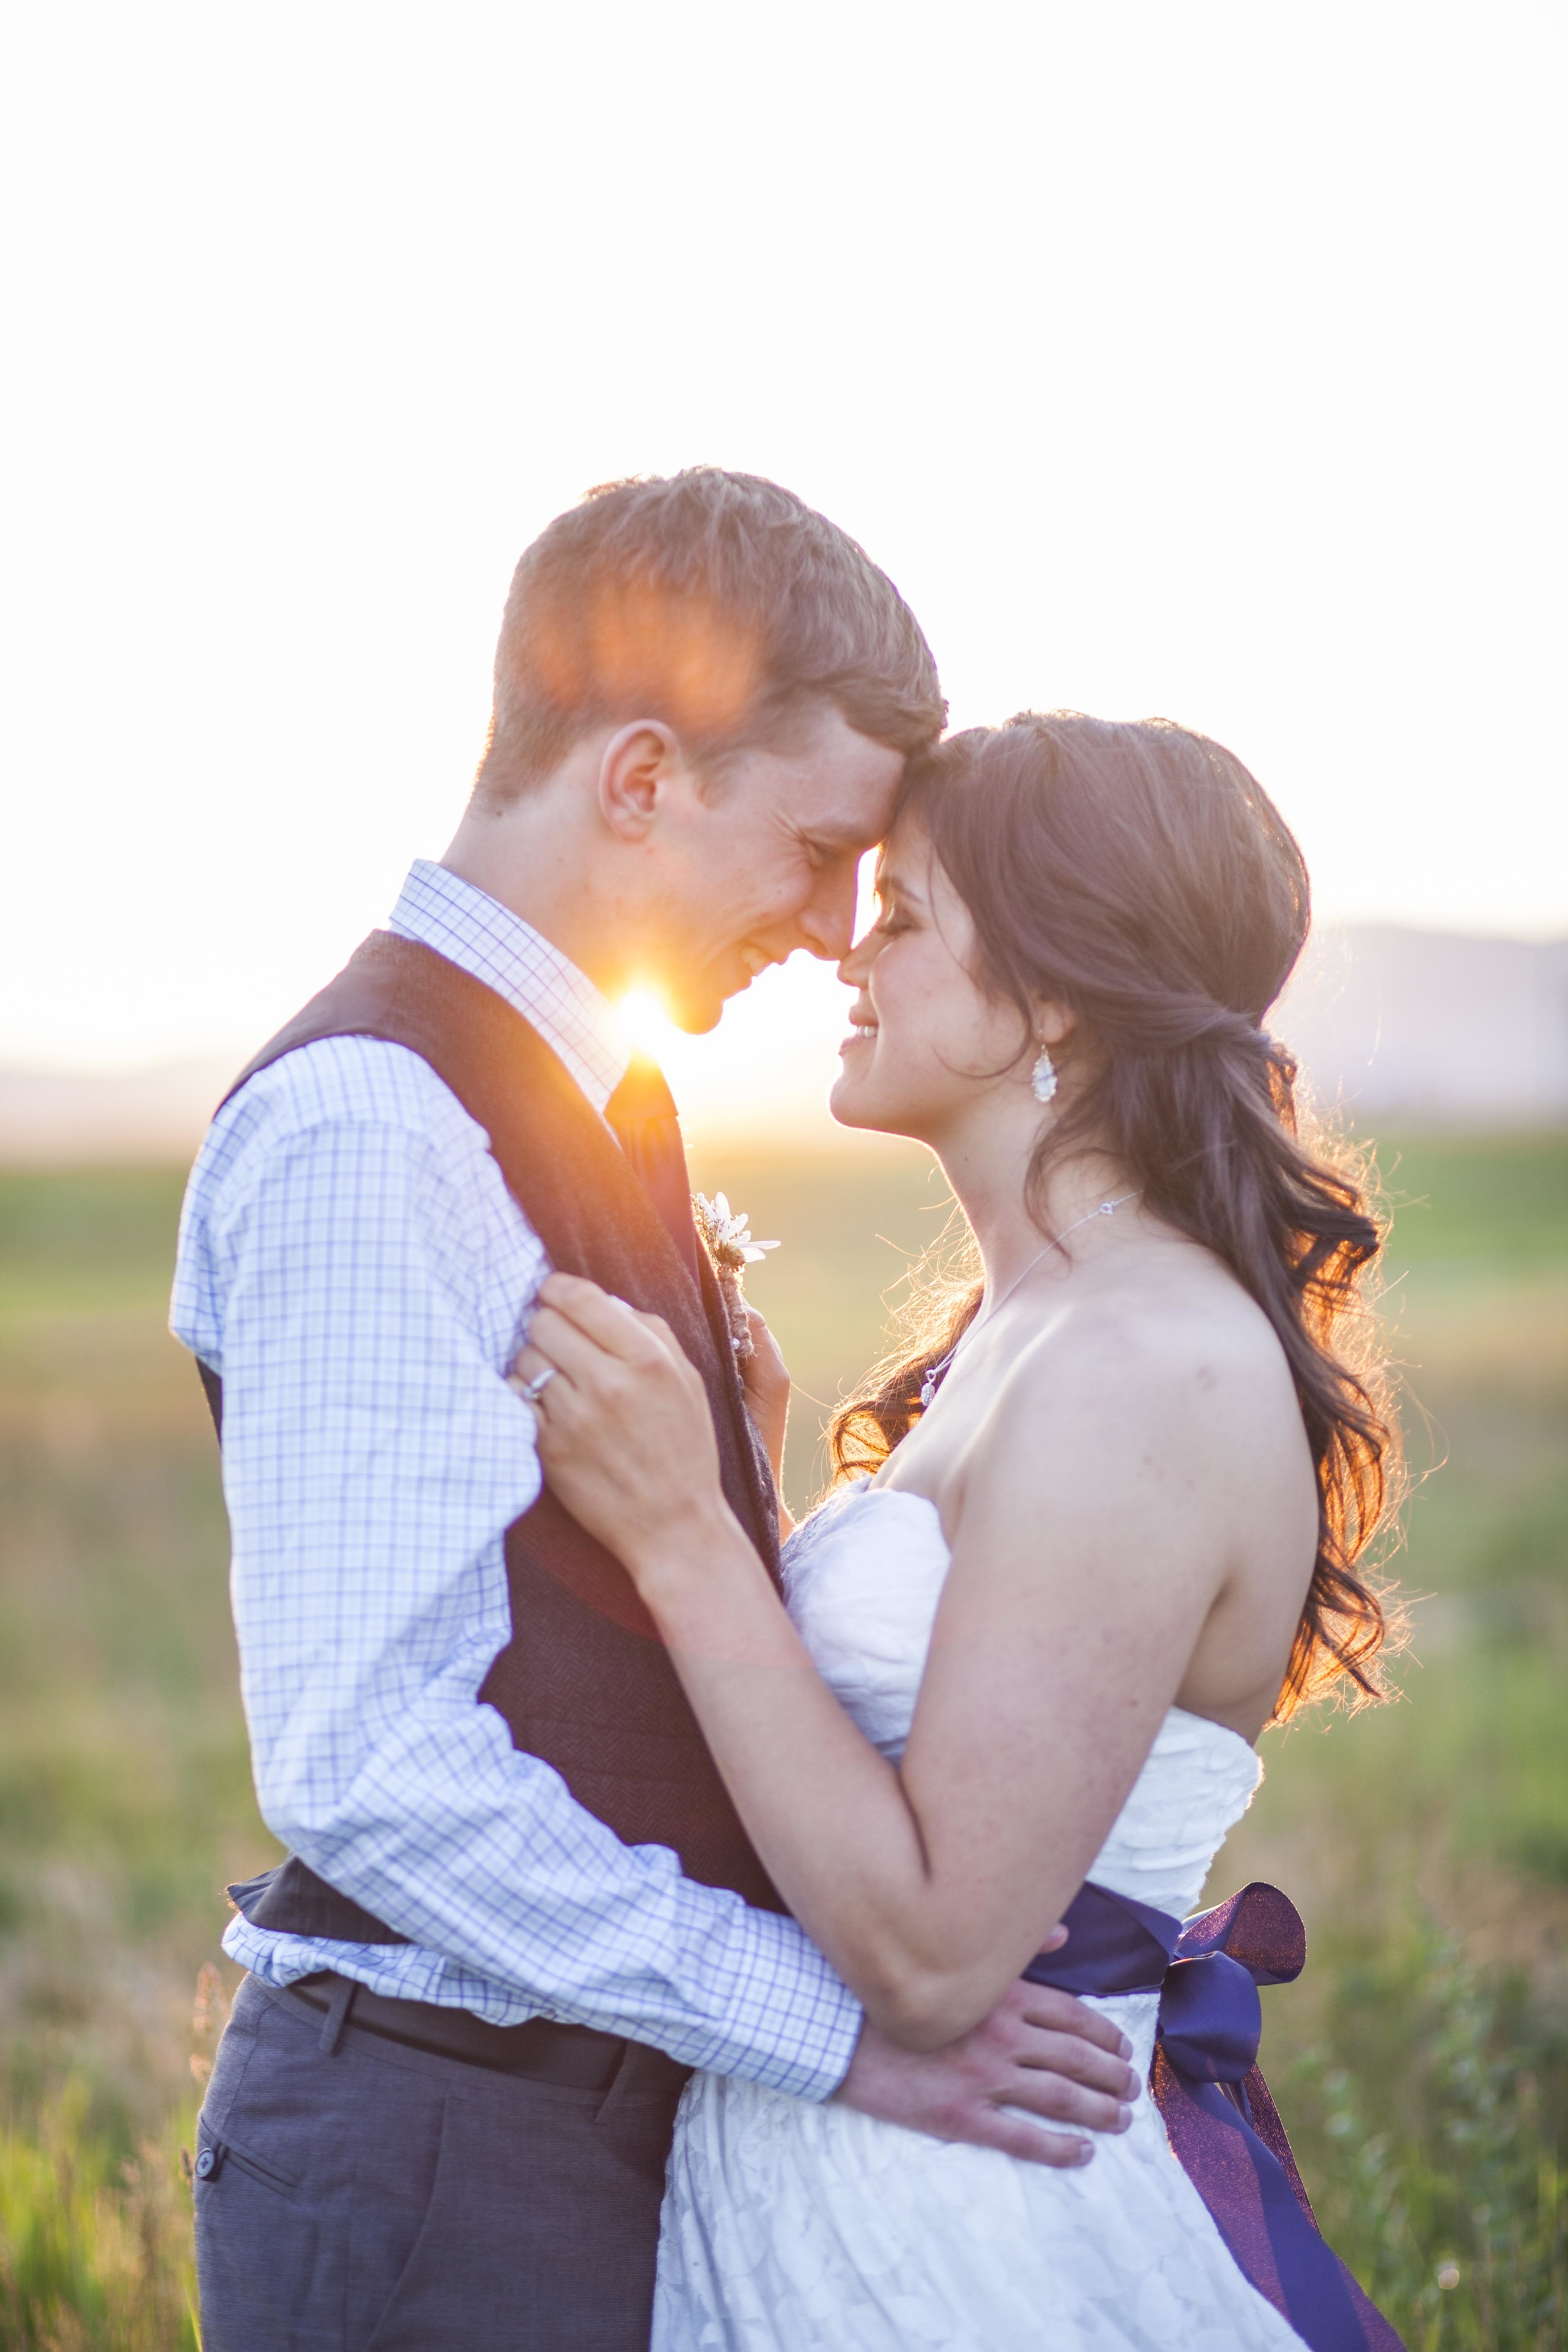 We captured this gorgeous couple on their wedding day in Idaho. We love that our photography and videography takes us to the corners of the globe to document weddings and families.